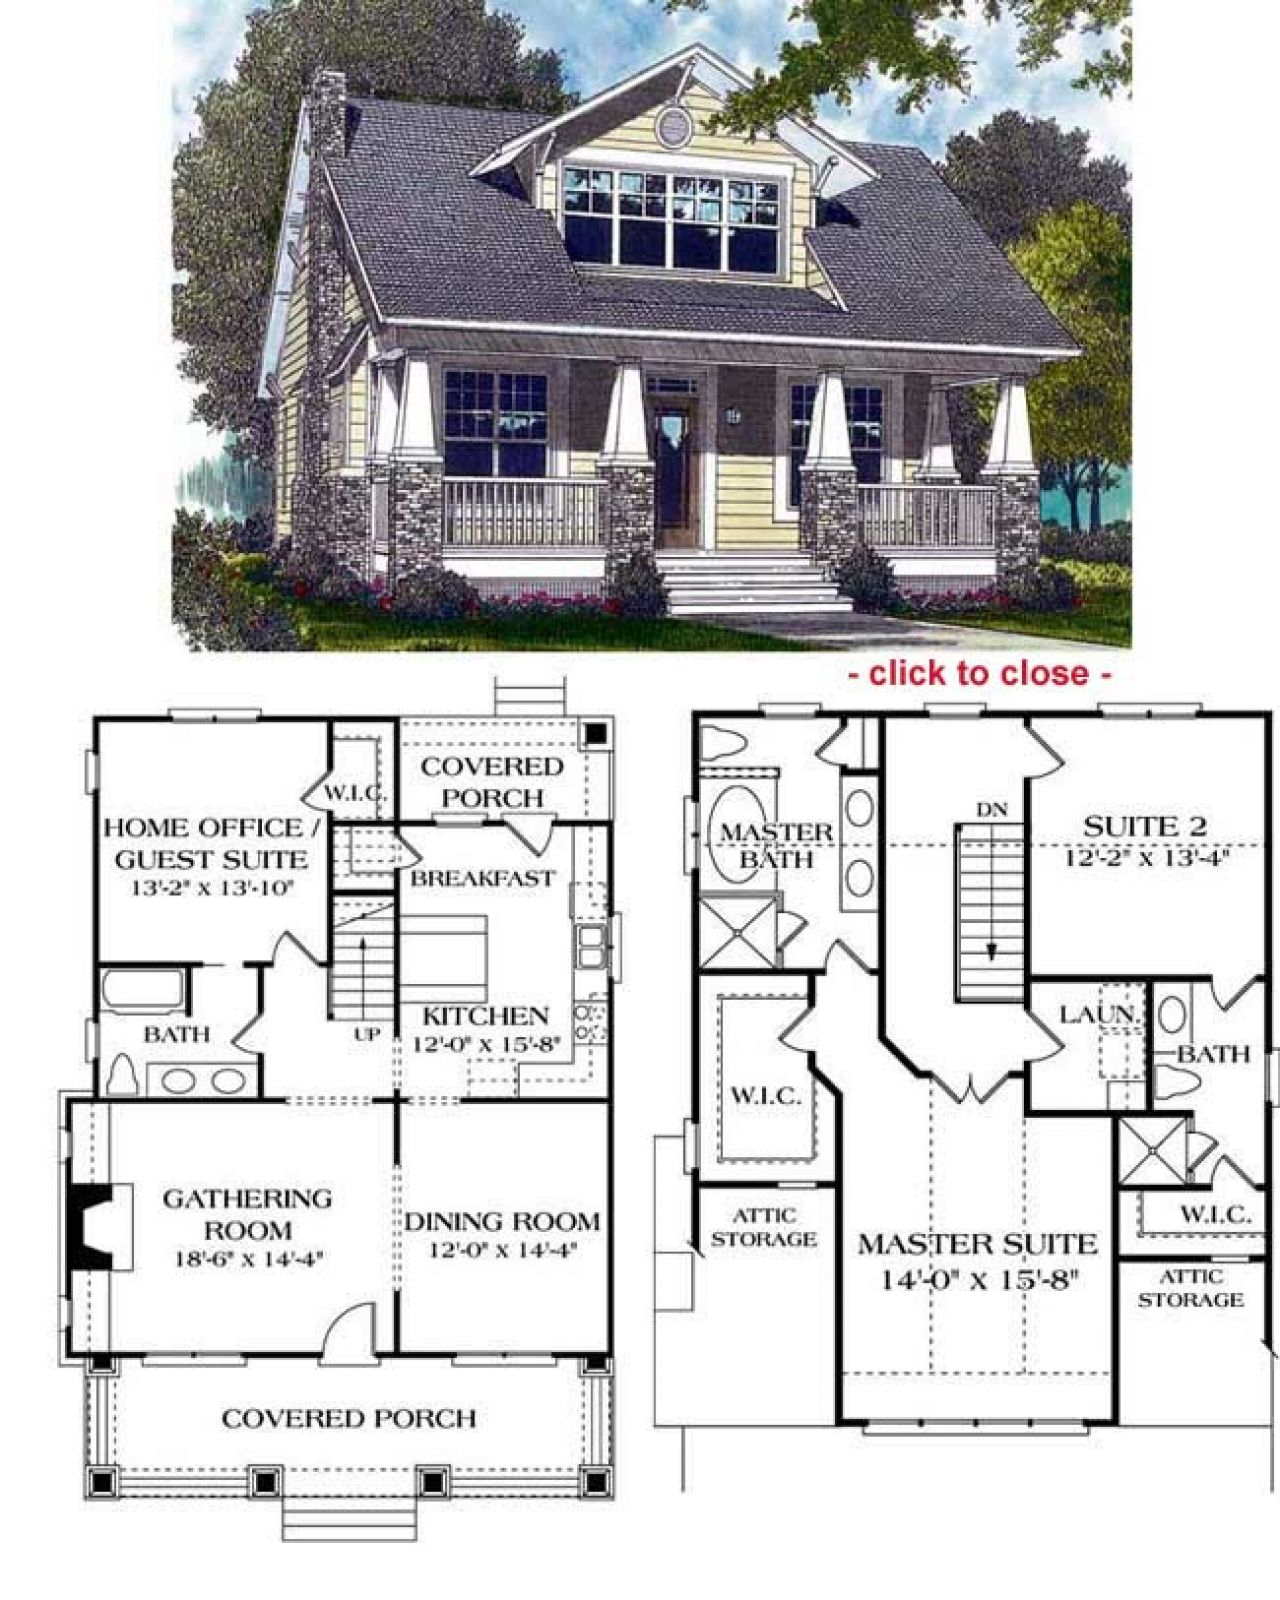 Bungalow house styles craftsman house plans and for American craftsman home plans